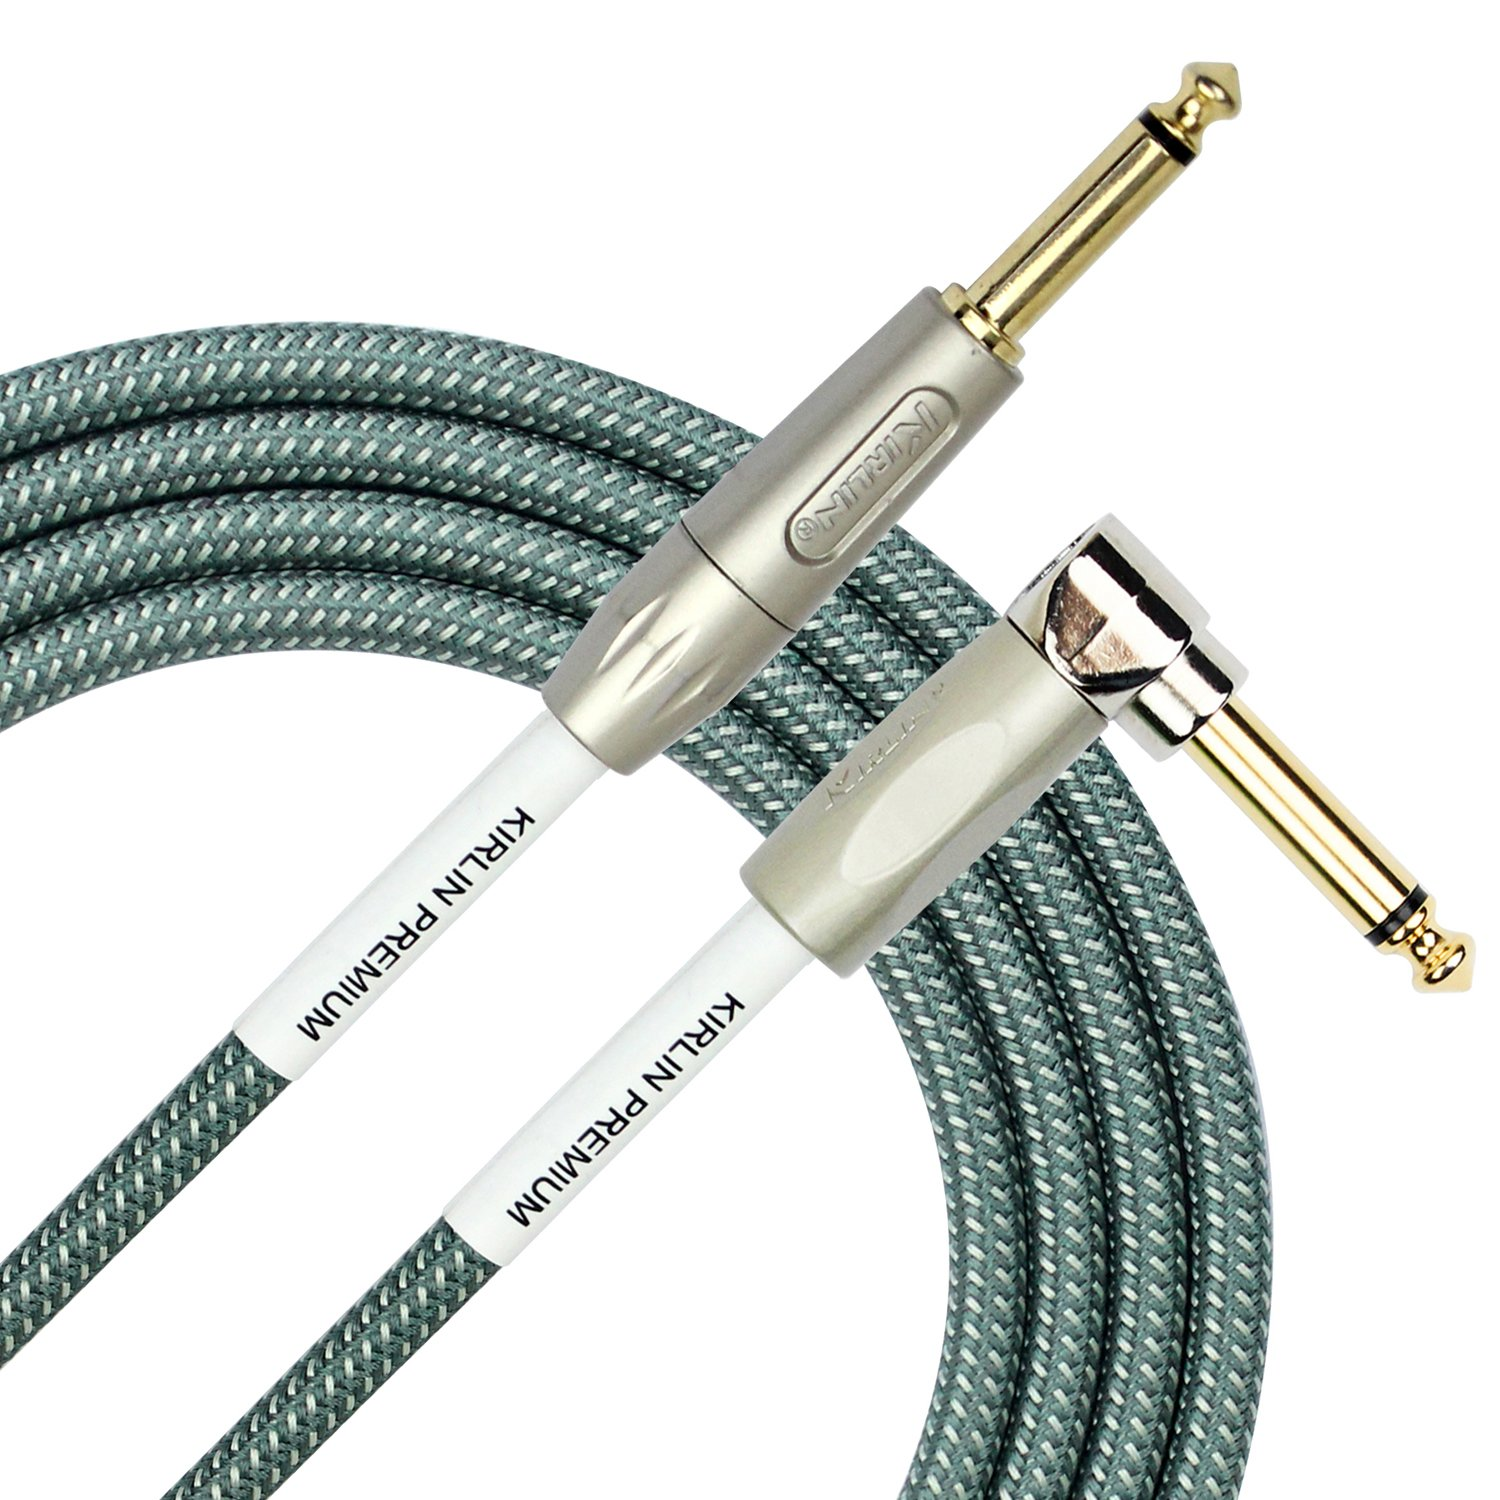 Kirlin Cable IWB-202PFGL-10/OL -10 feet- Straight to Right Angle 1/4-Inch Plug Premium Plus Instrument Cable, Olive Green Tweed Woven Jacket by KIRLIN, KIRLIN CABLE